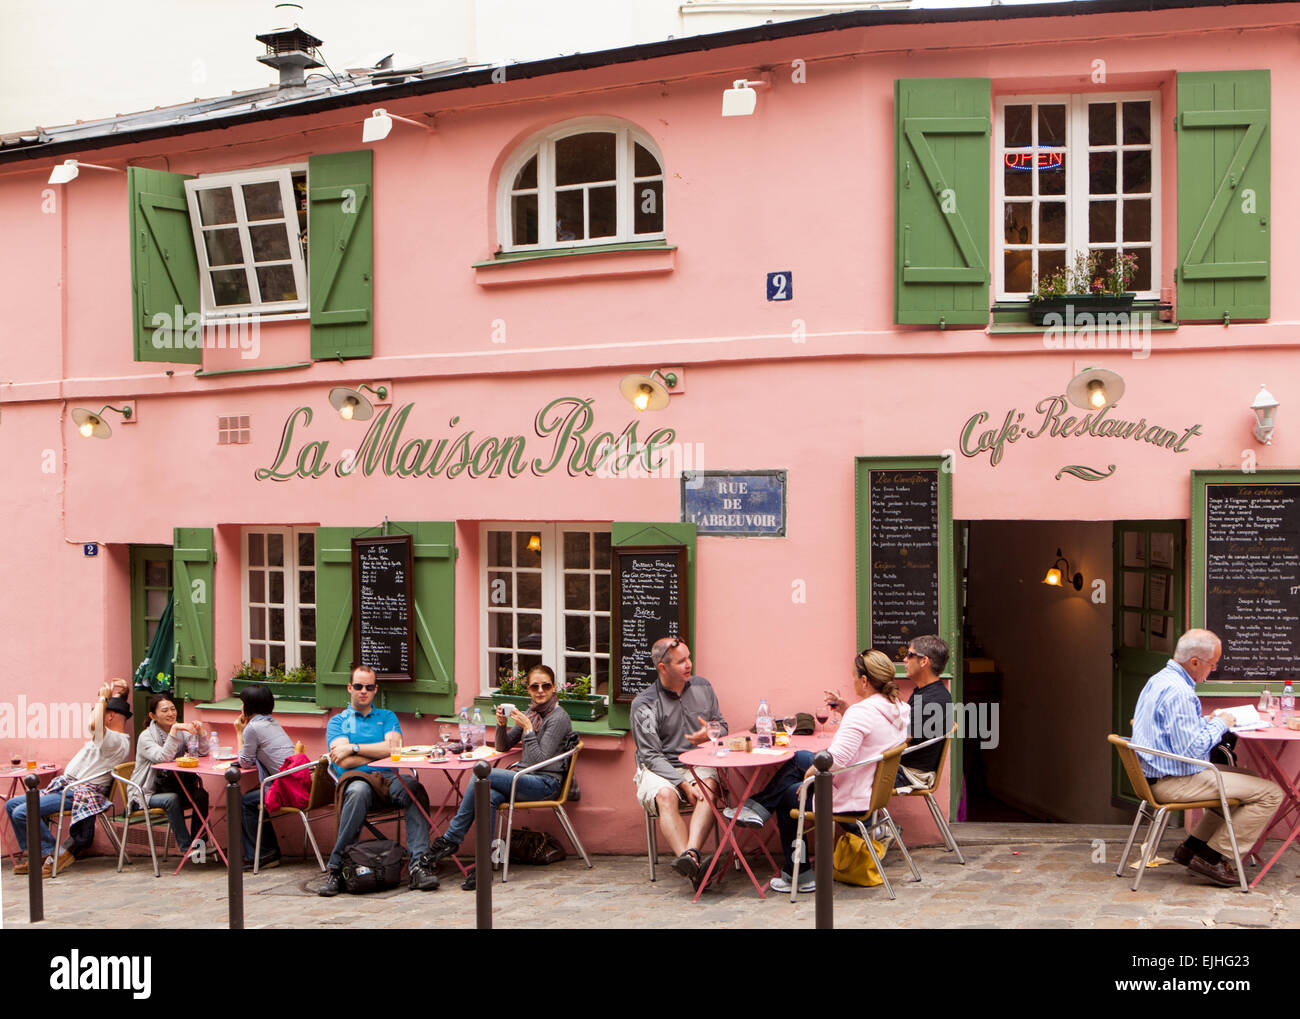 outdoor eating at la maison rose cafe montmartre paris france stock photo 80291067 alamy. Black Bedroom Furniture Sets. Home Design Ideas